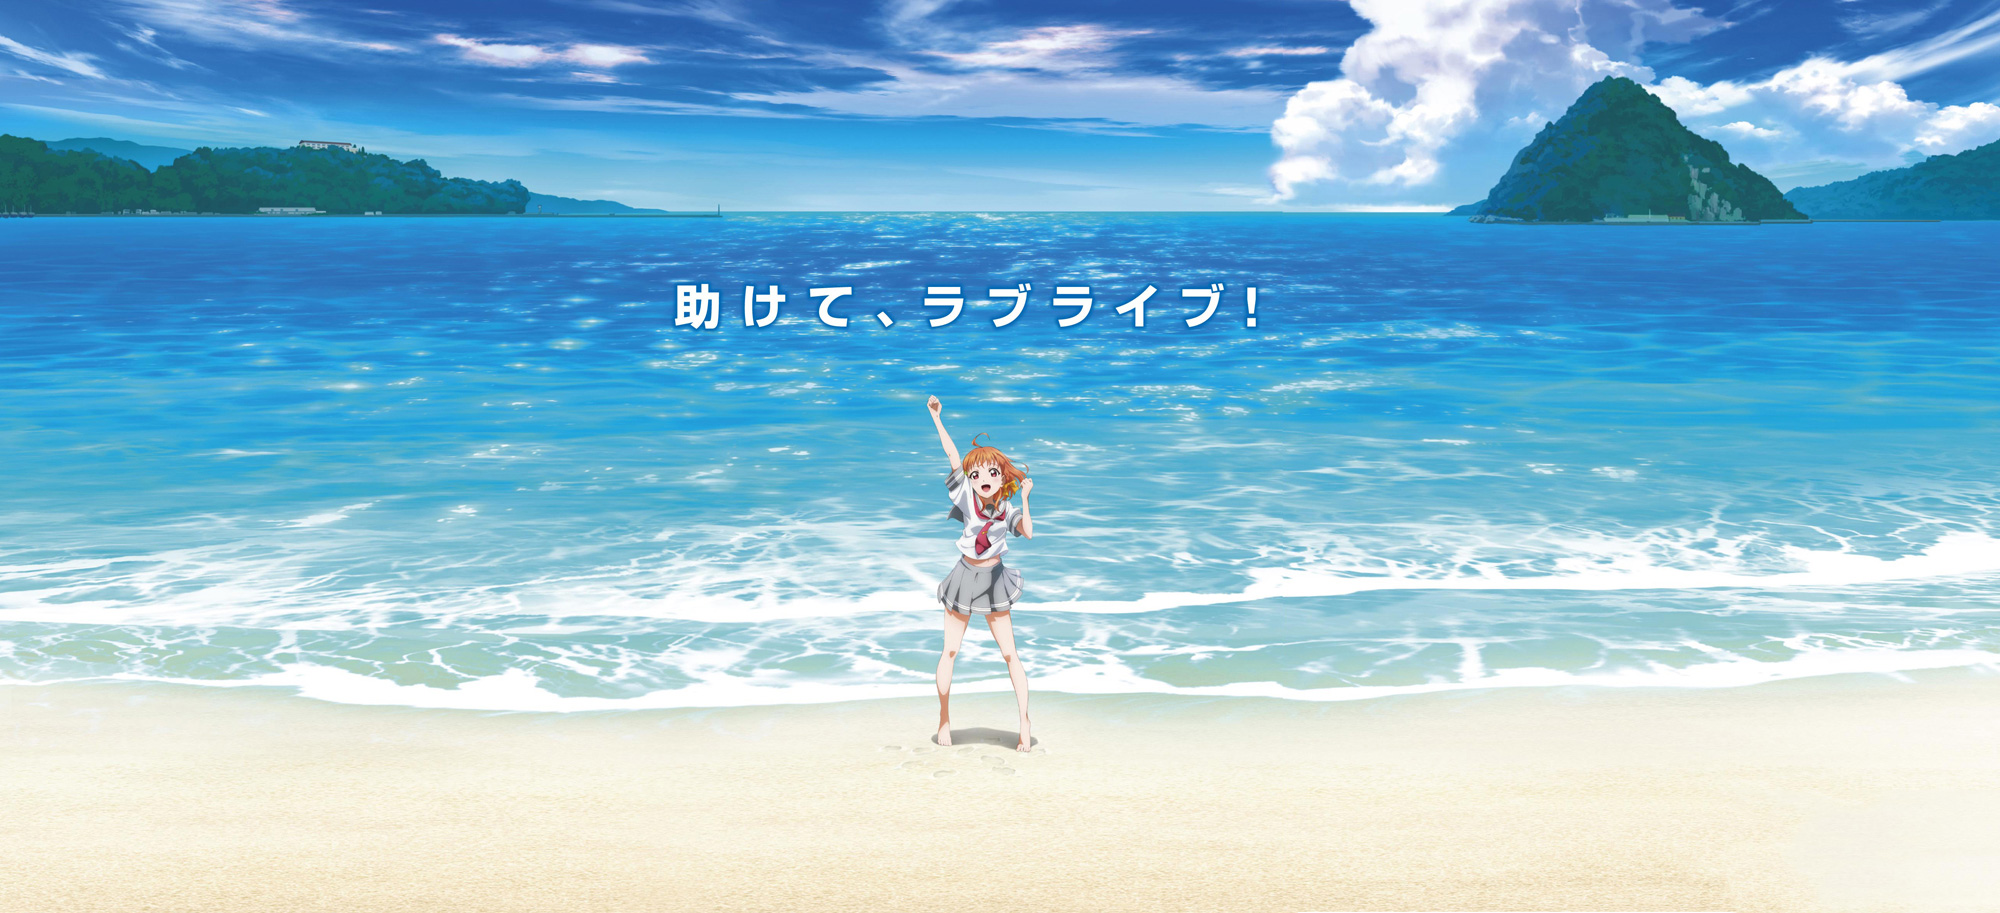 Love-Live!-Sunshine-Announcement-Image